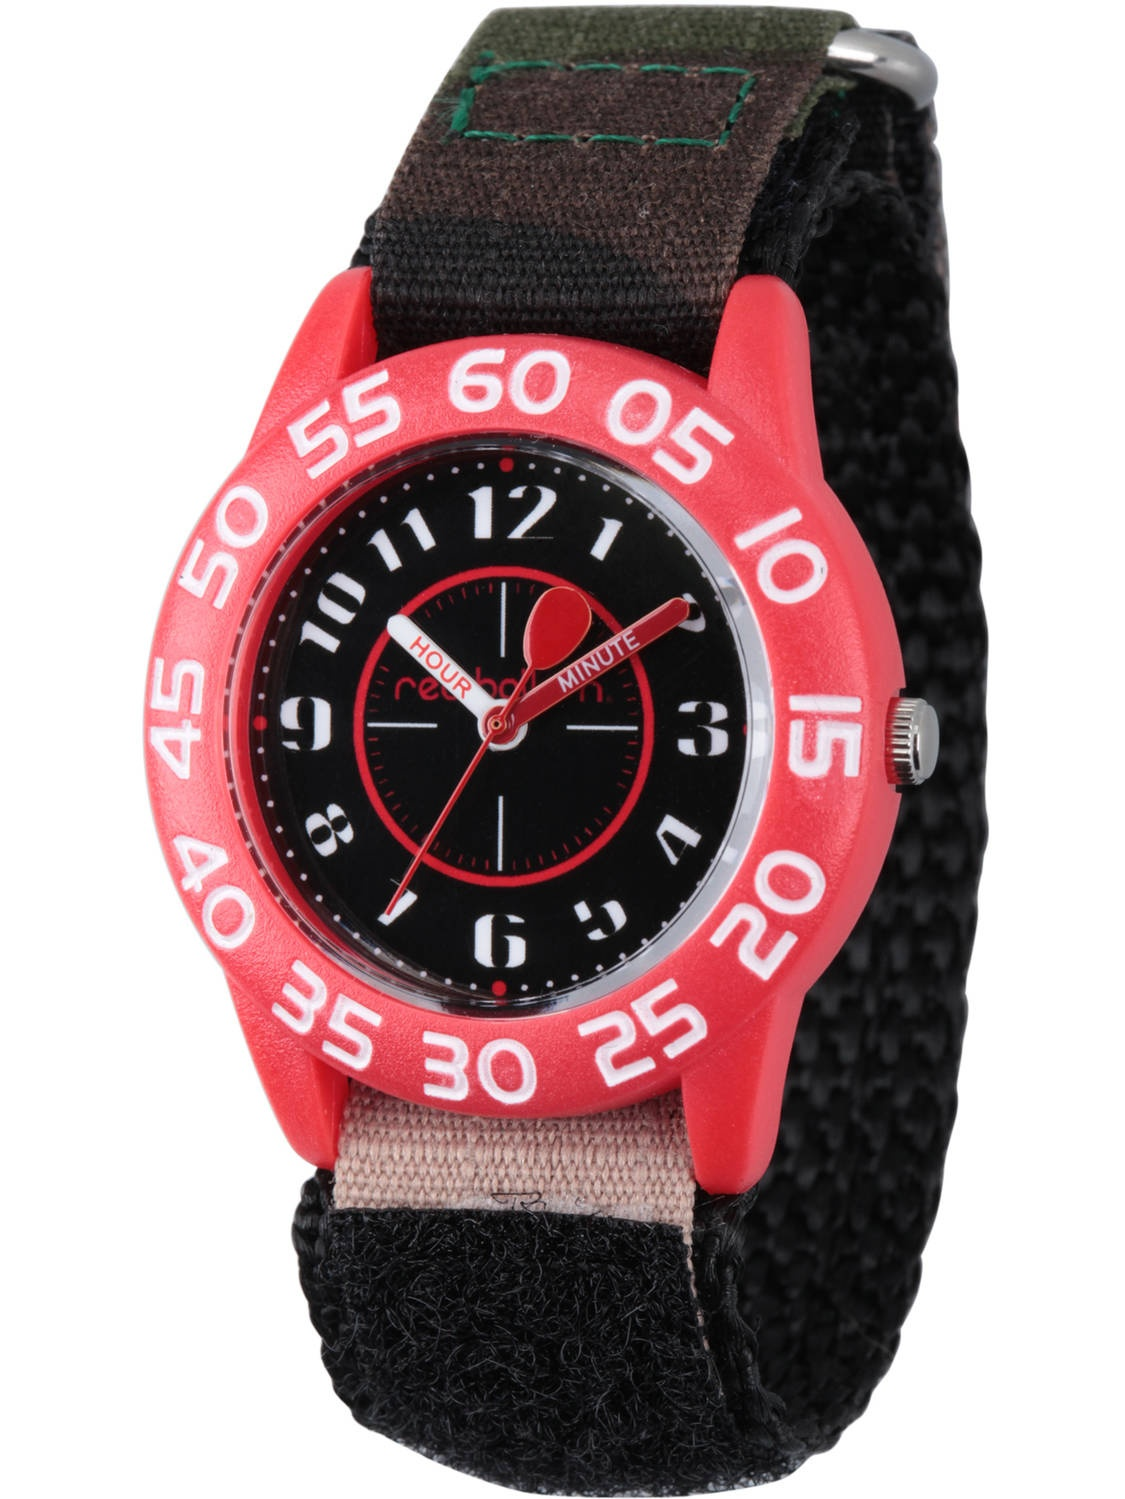 Boys' Red Plastic Time Teacher Watch, Camo Hook and Loop Nylon Strap with Black Backing